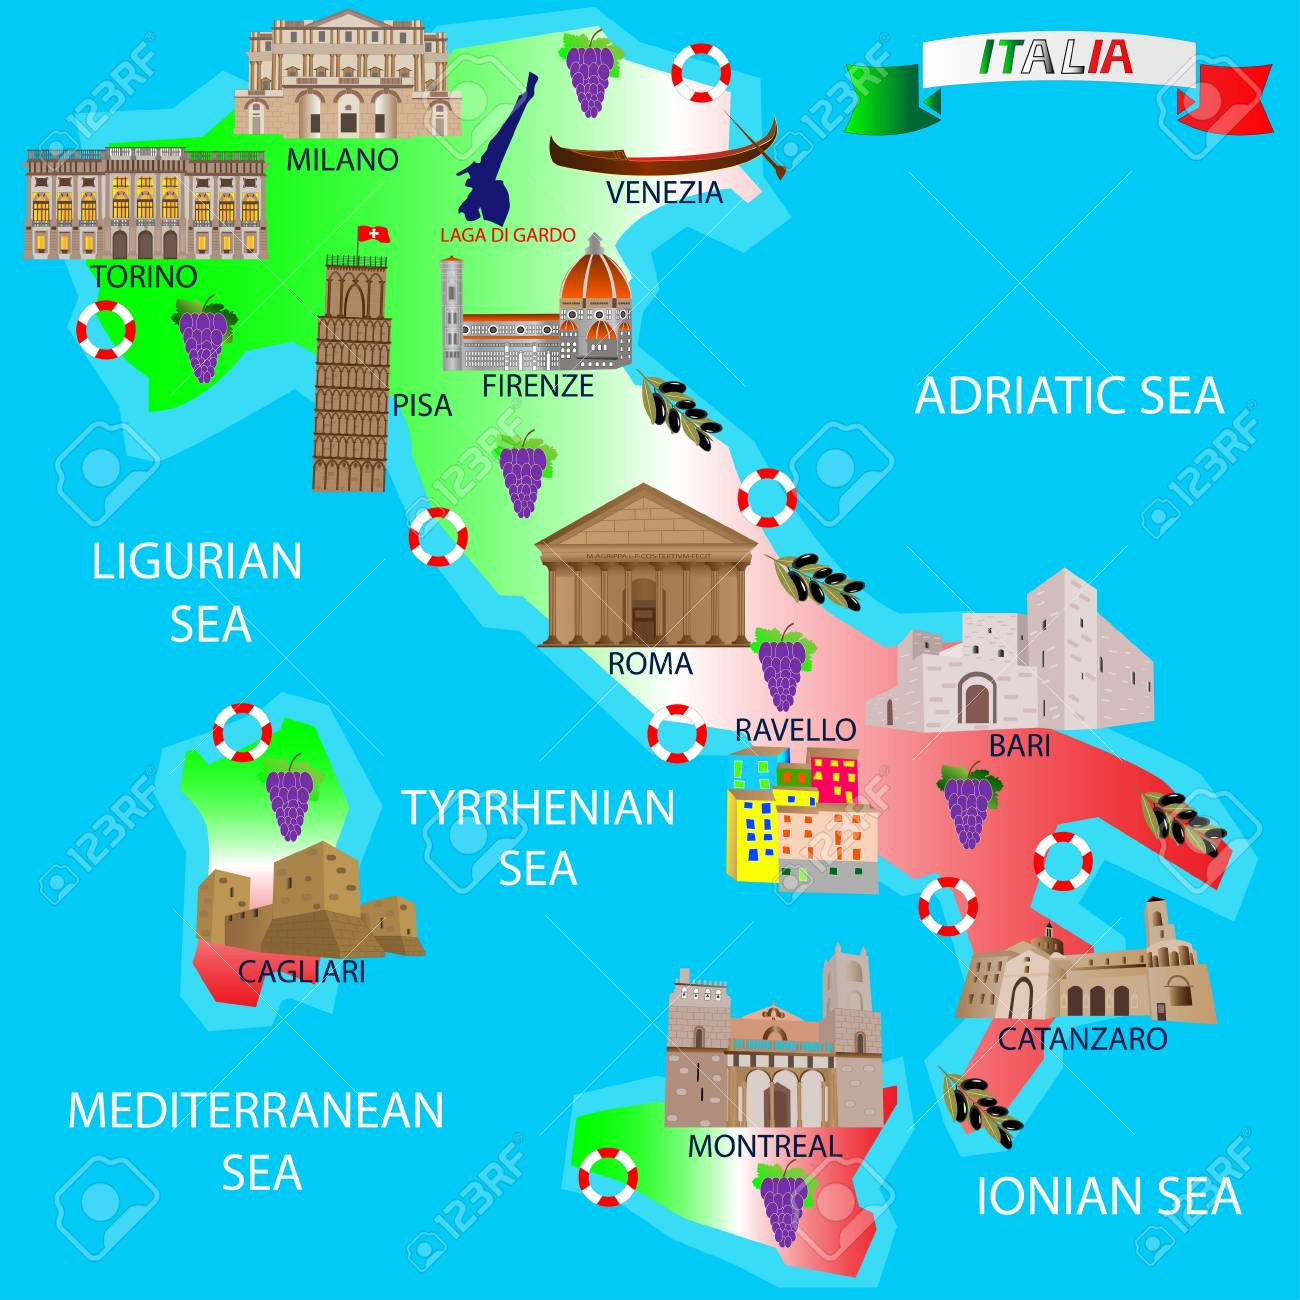 Map Of Italy For Tourists.Map Of Italy For Tourists Architectural Monuments Royalty Free